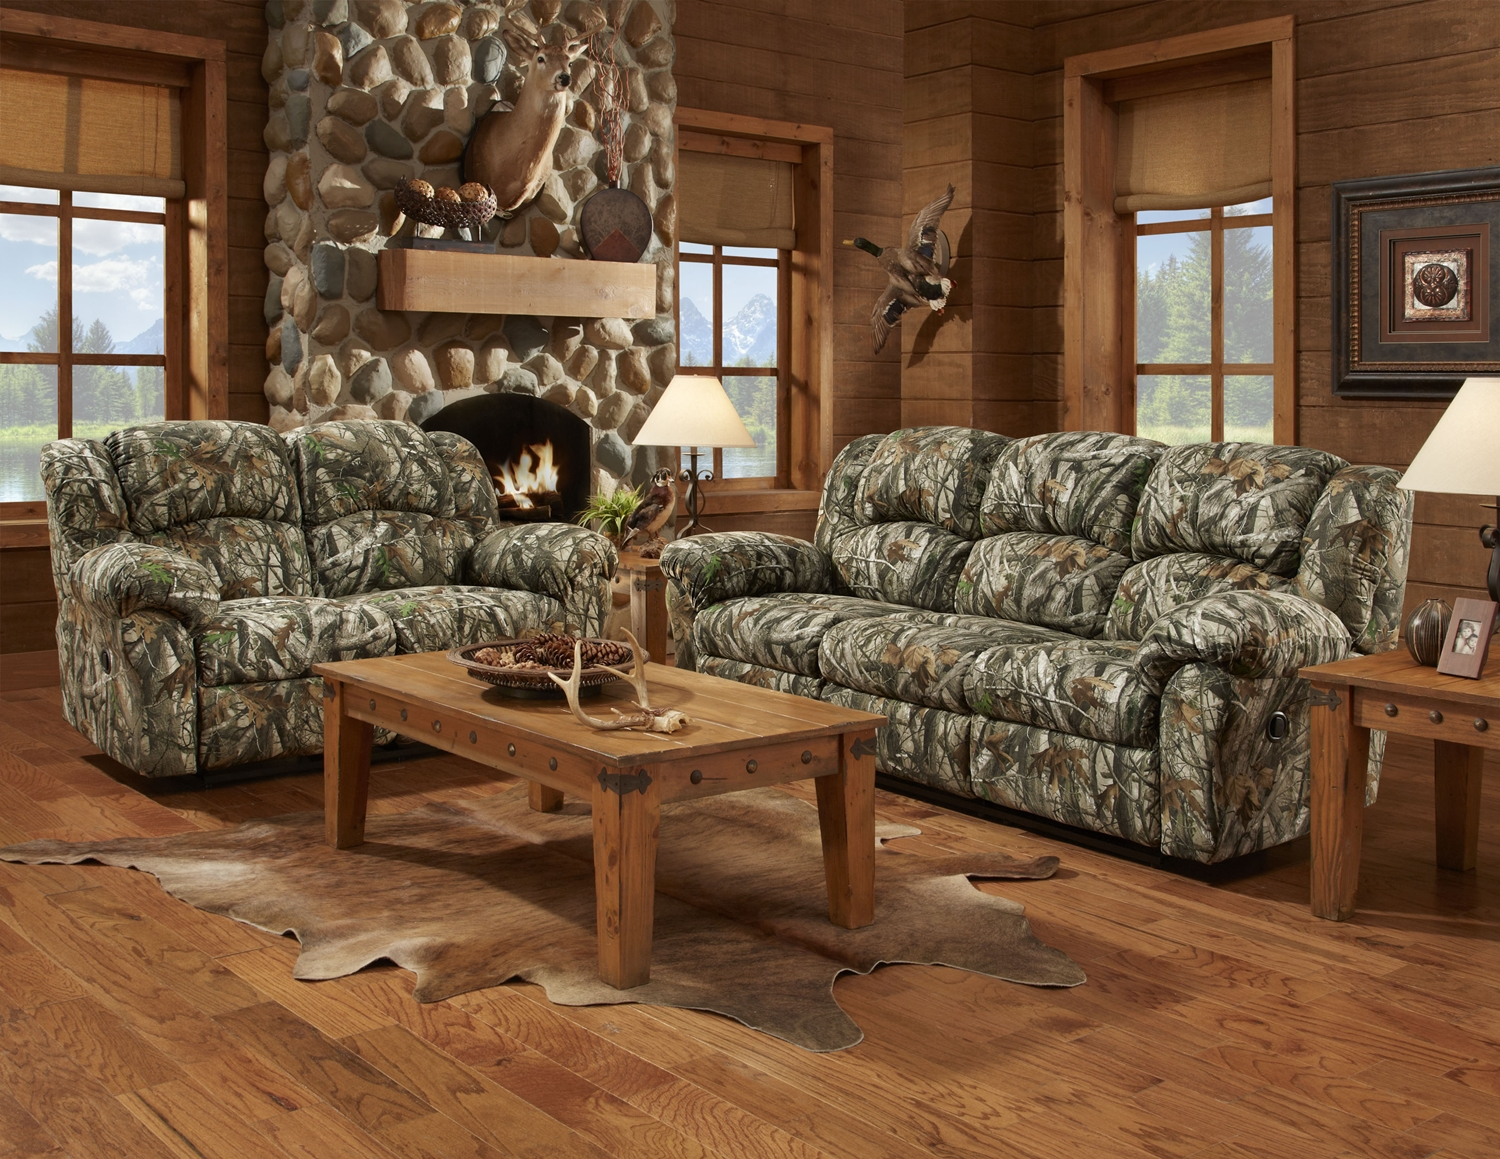 Mossy Oak Camouflage Reclining Motion Sofa Loveseat Camo Hunting Living Room